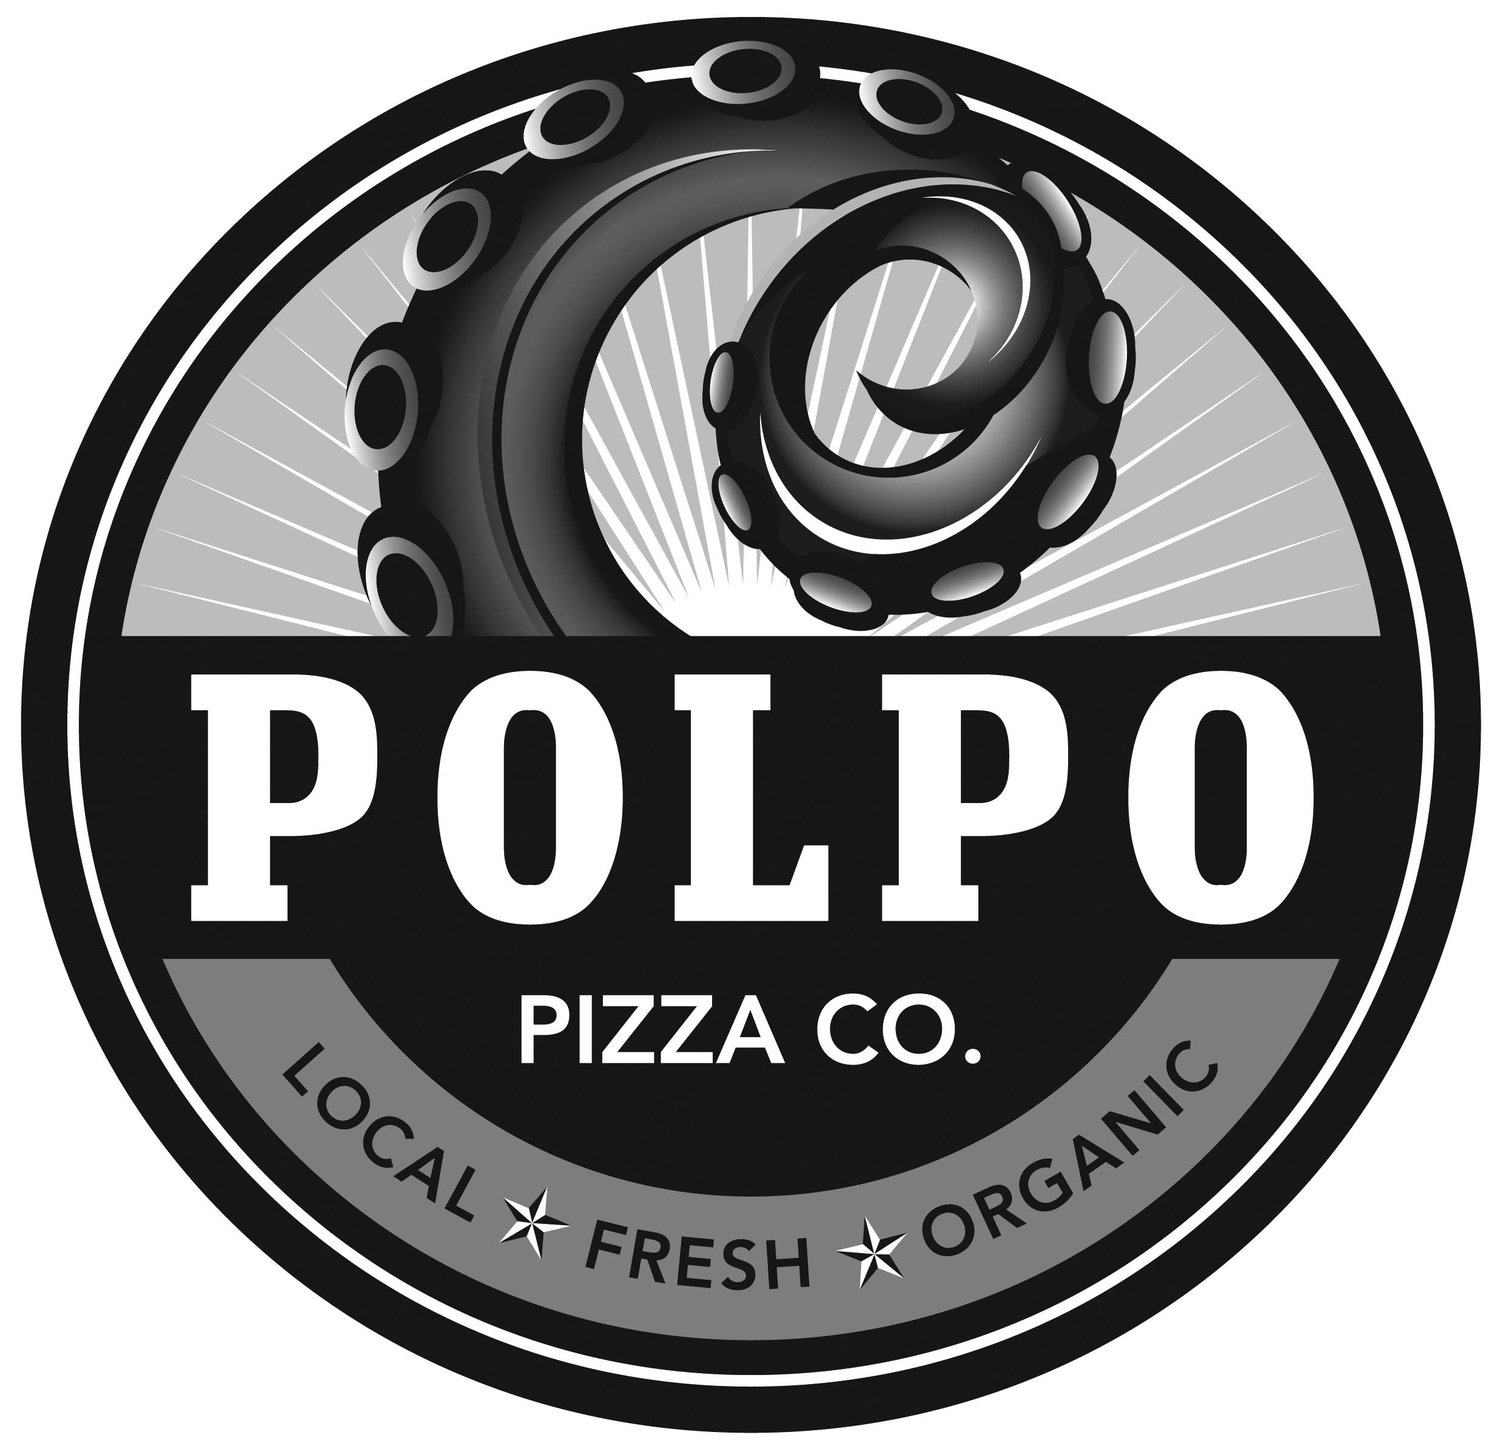 Polpo Pizza Co. - A Wood-Fired Pizza Catering Company in Sarasota